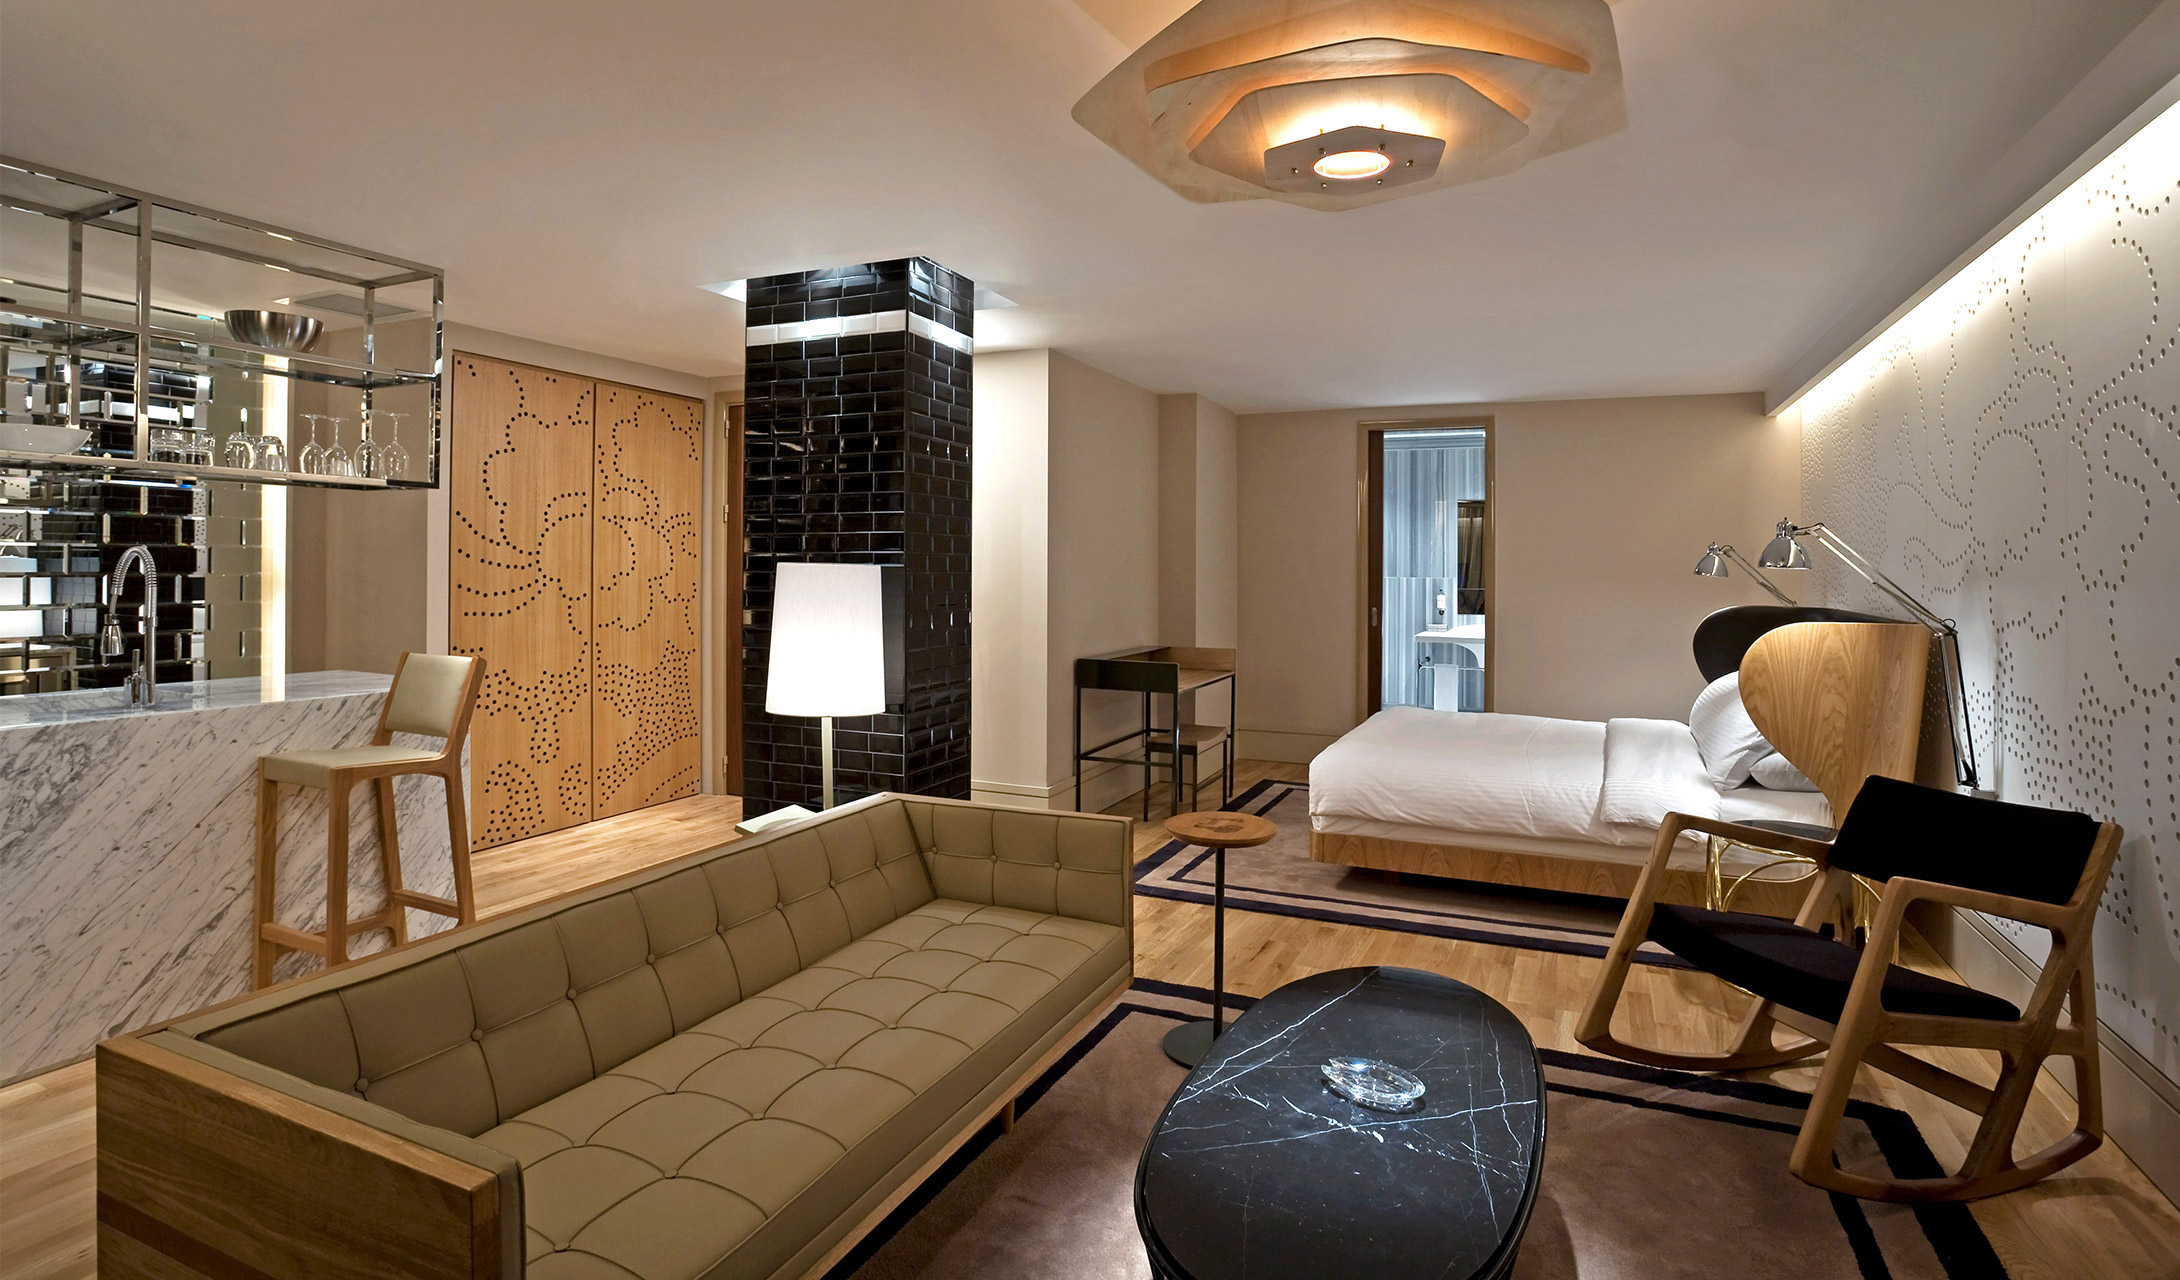 Witt istanbul hotel turkey design hotels for Designhotel q